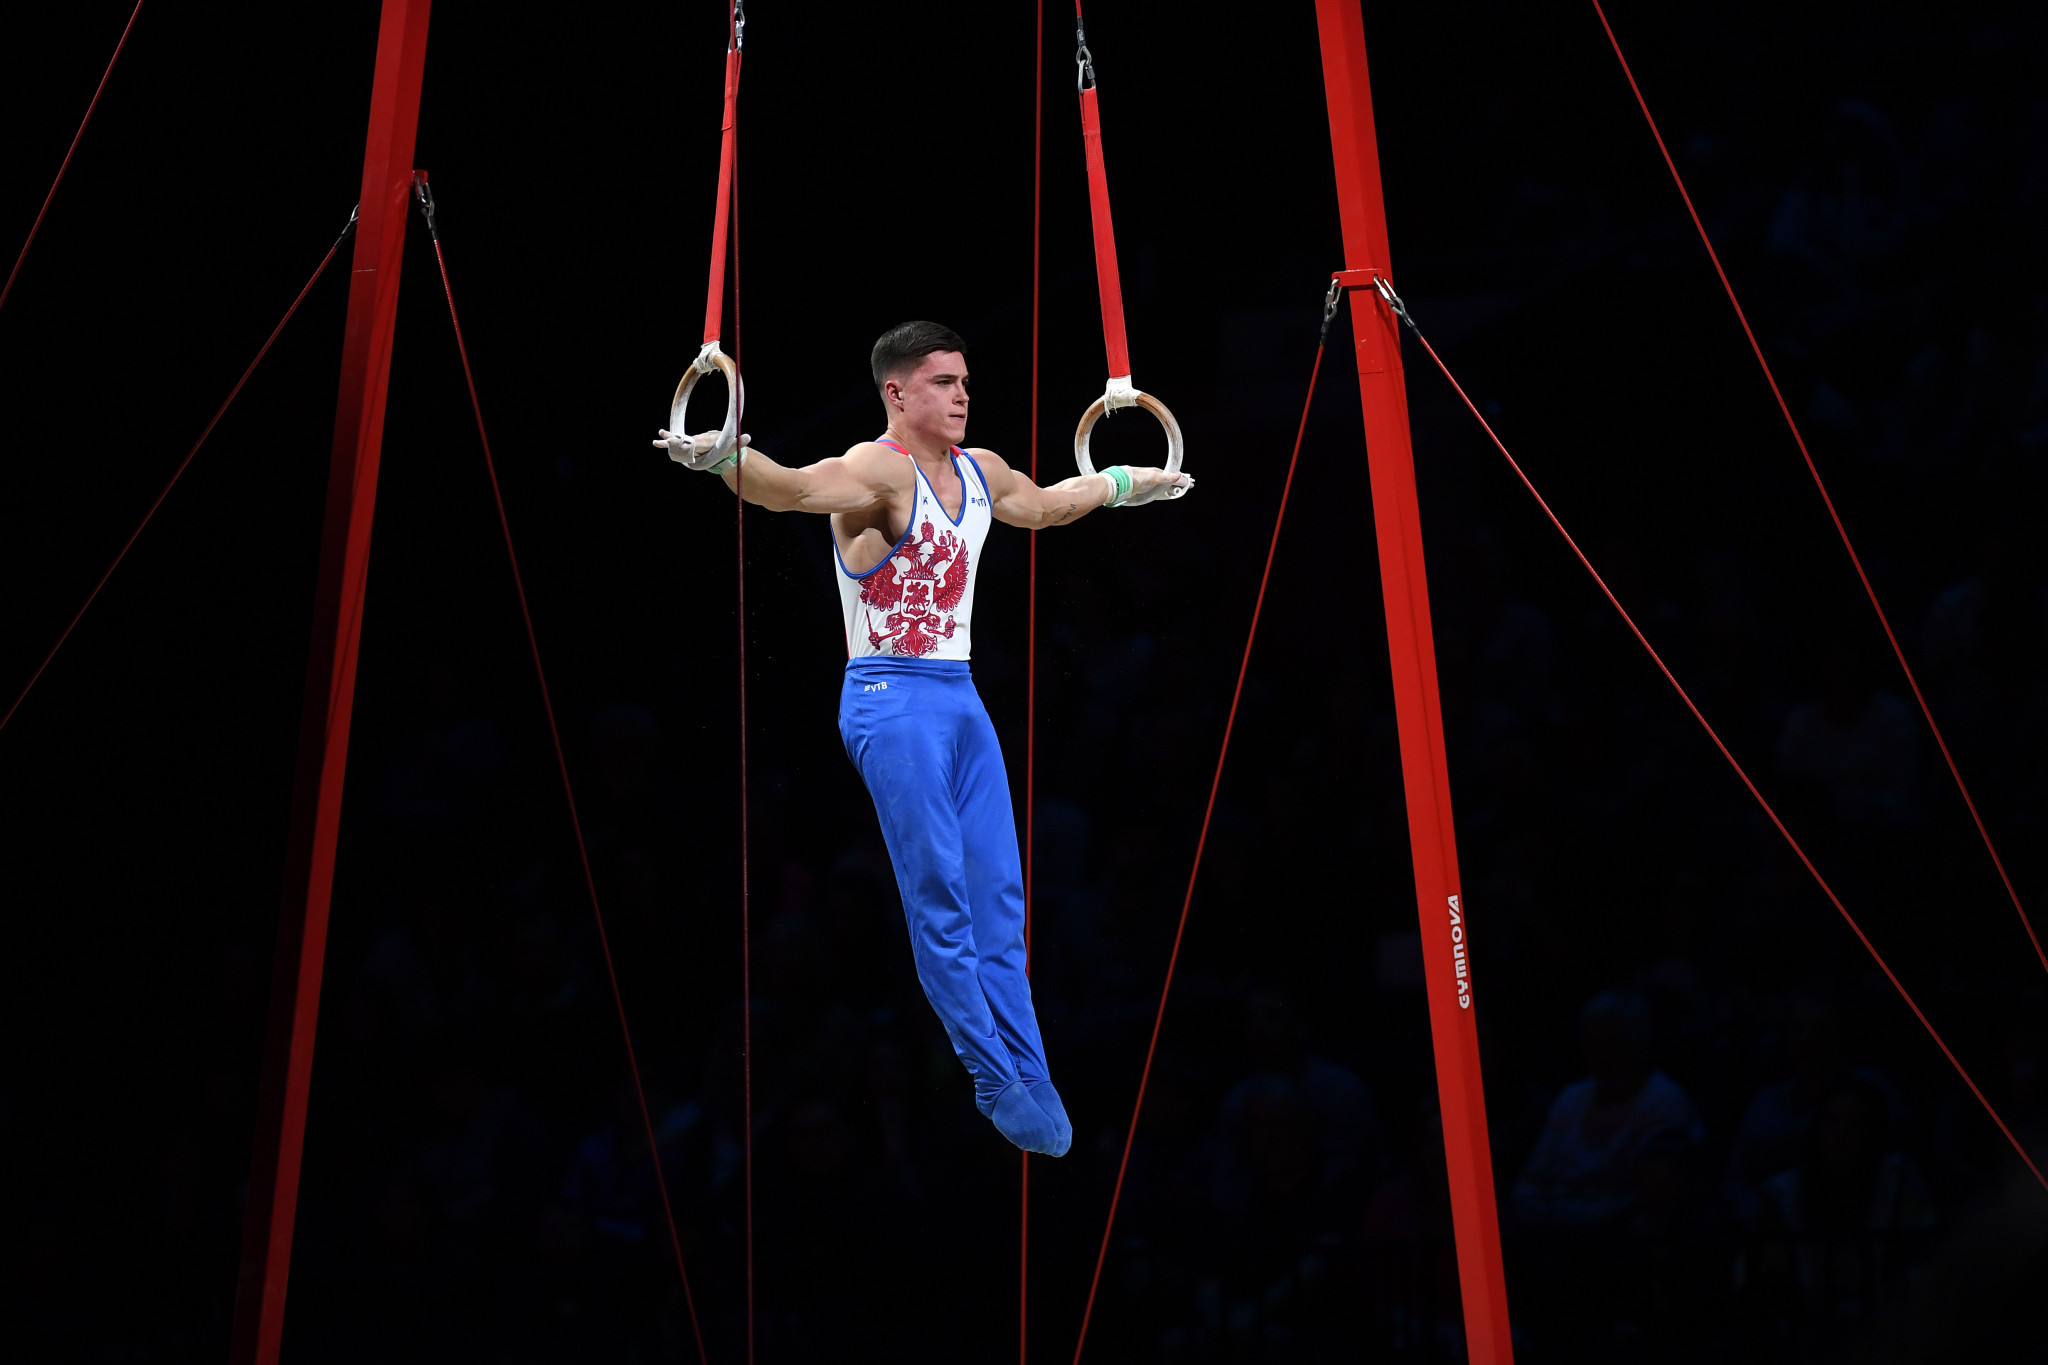 FIG Apparatus and Trampoline World Cup events have been cancelled ©Getty Images